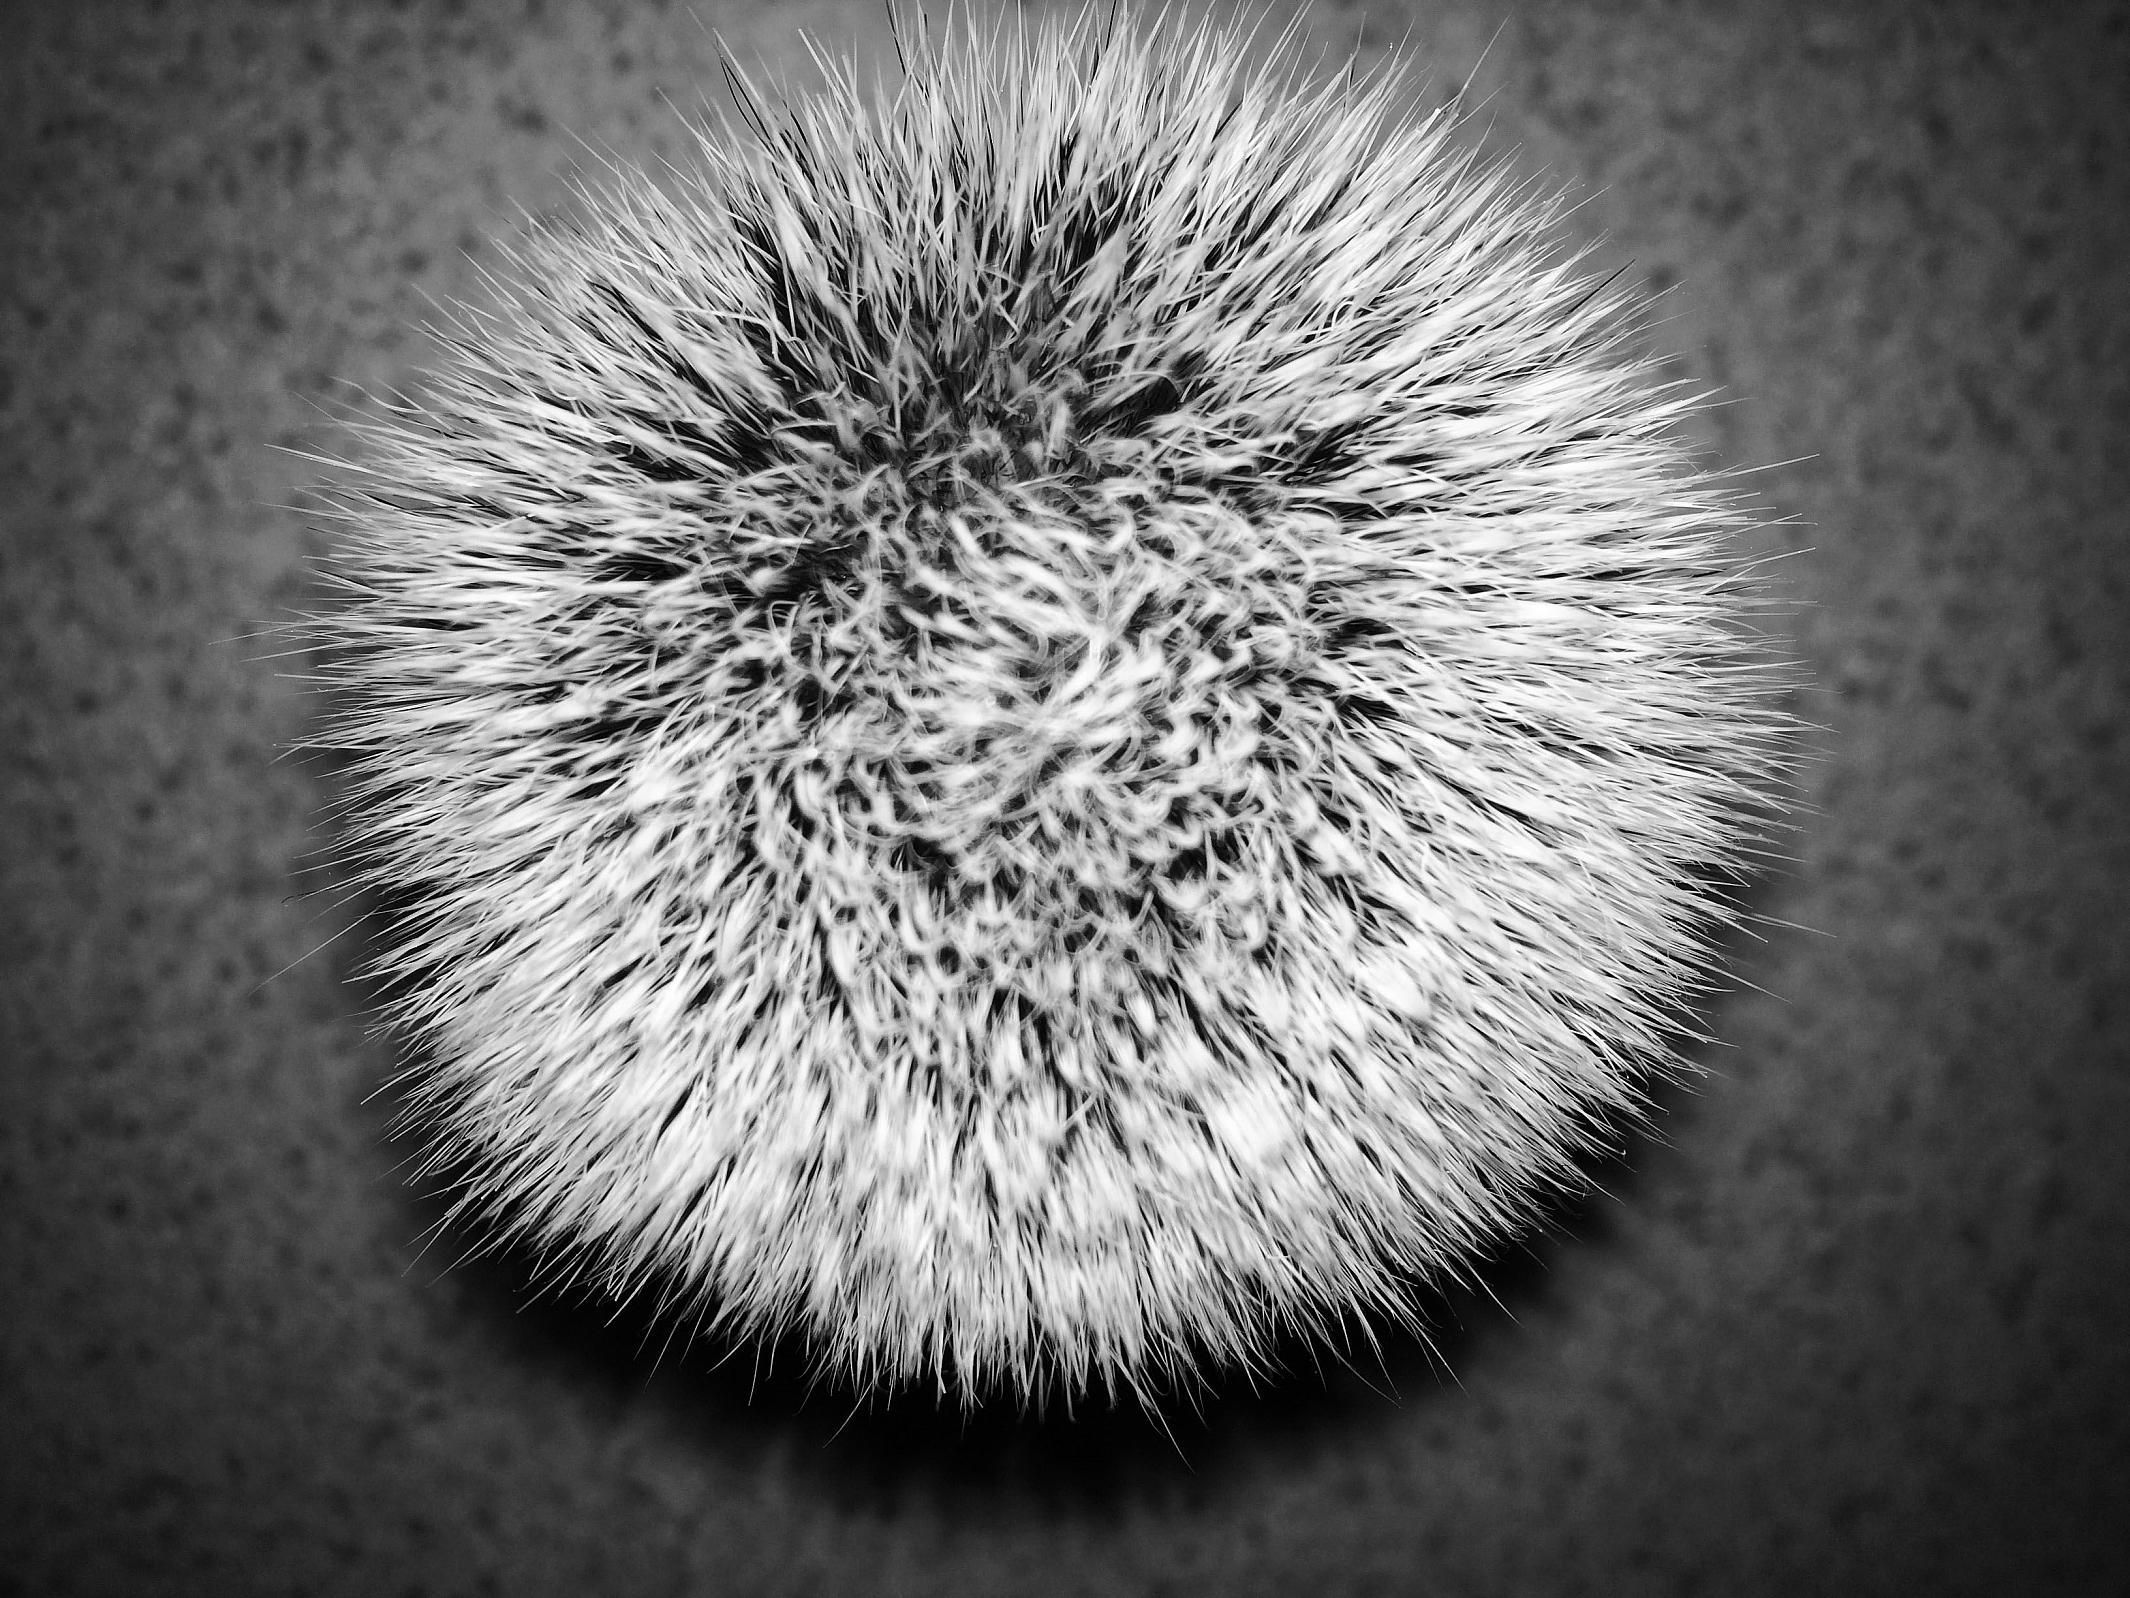 A whorl in a synthetic knot